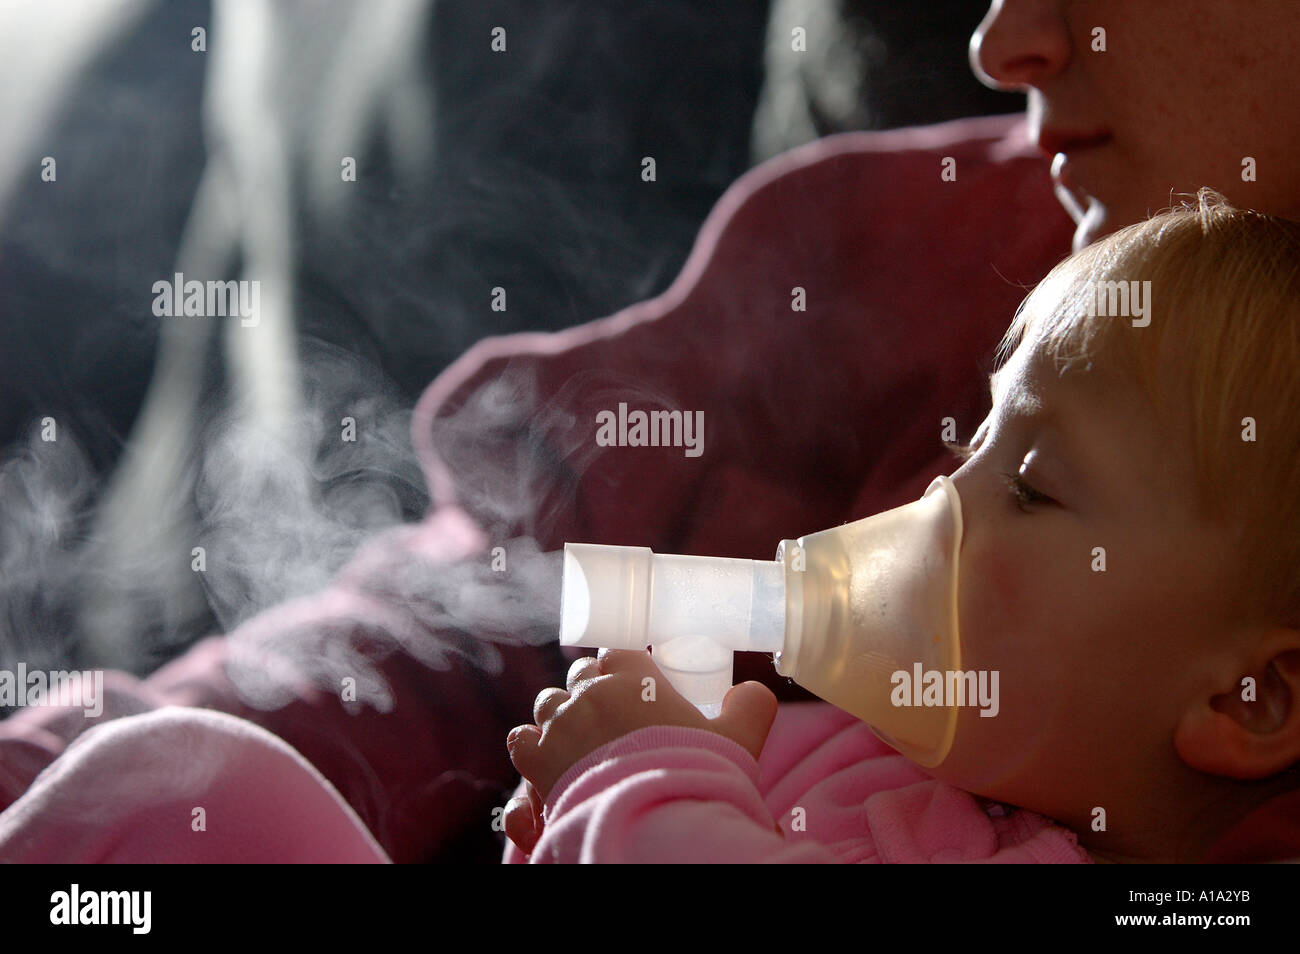 A toddler sits on her mother's lap as she takes her medicine through a nebulizer as part of treatment for asthma. - Stock Image